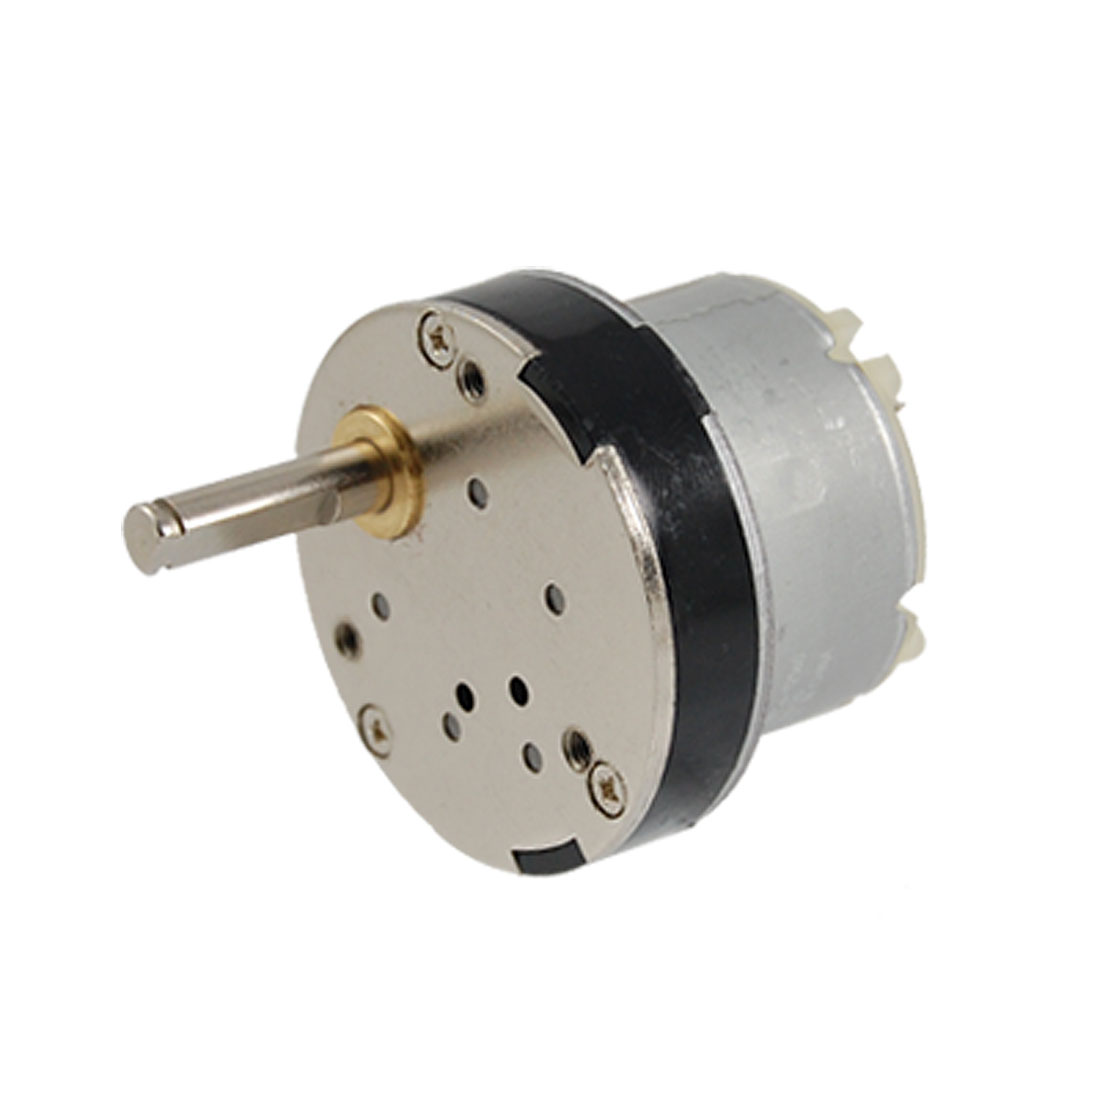 40mm Diameter Gear Box 50RPM DC 12V 0.15A Speed Reduce Motor